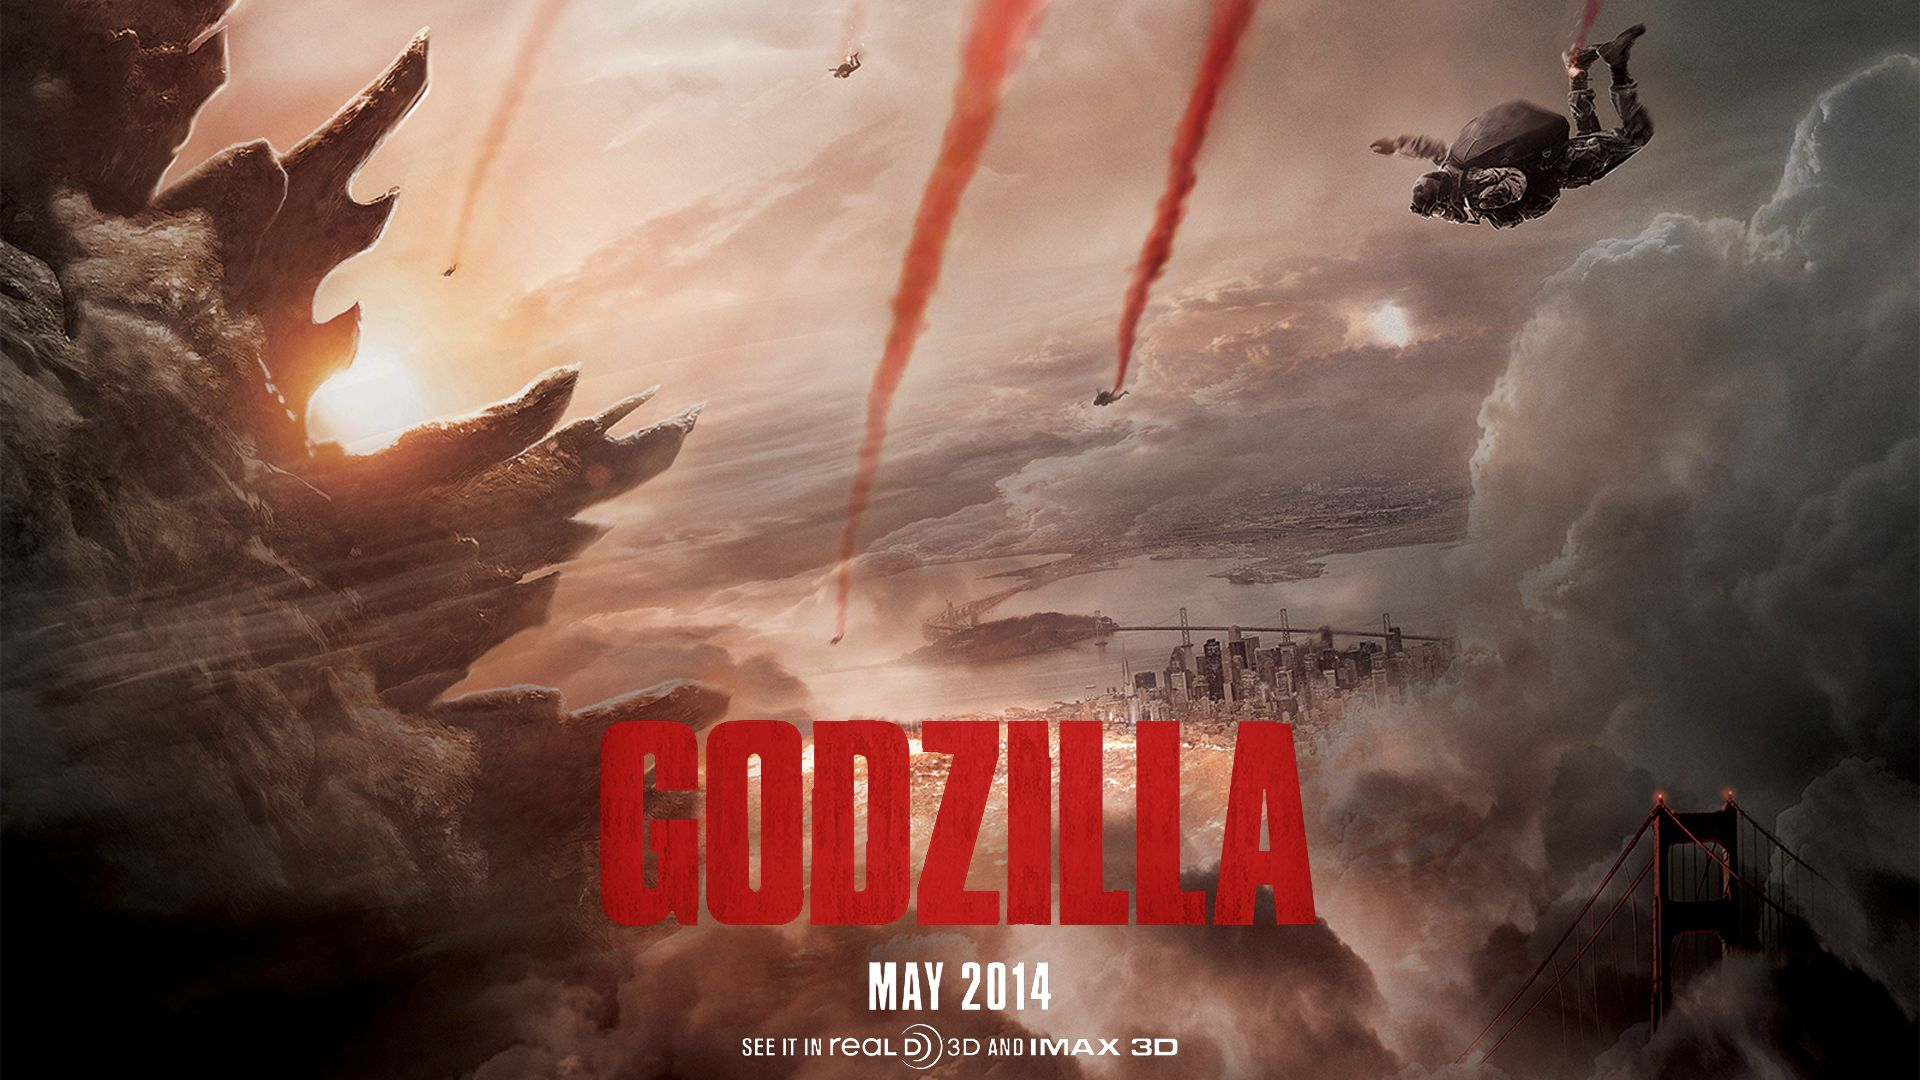 2014-godzilla-movie-teaser-poster-wallpaper-hdr.jpg